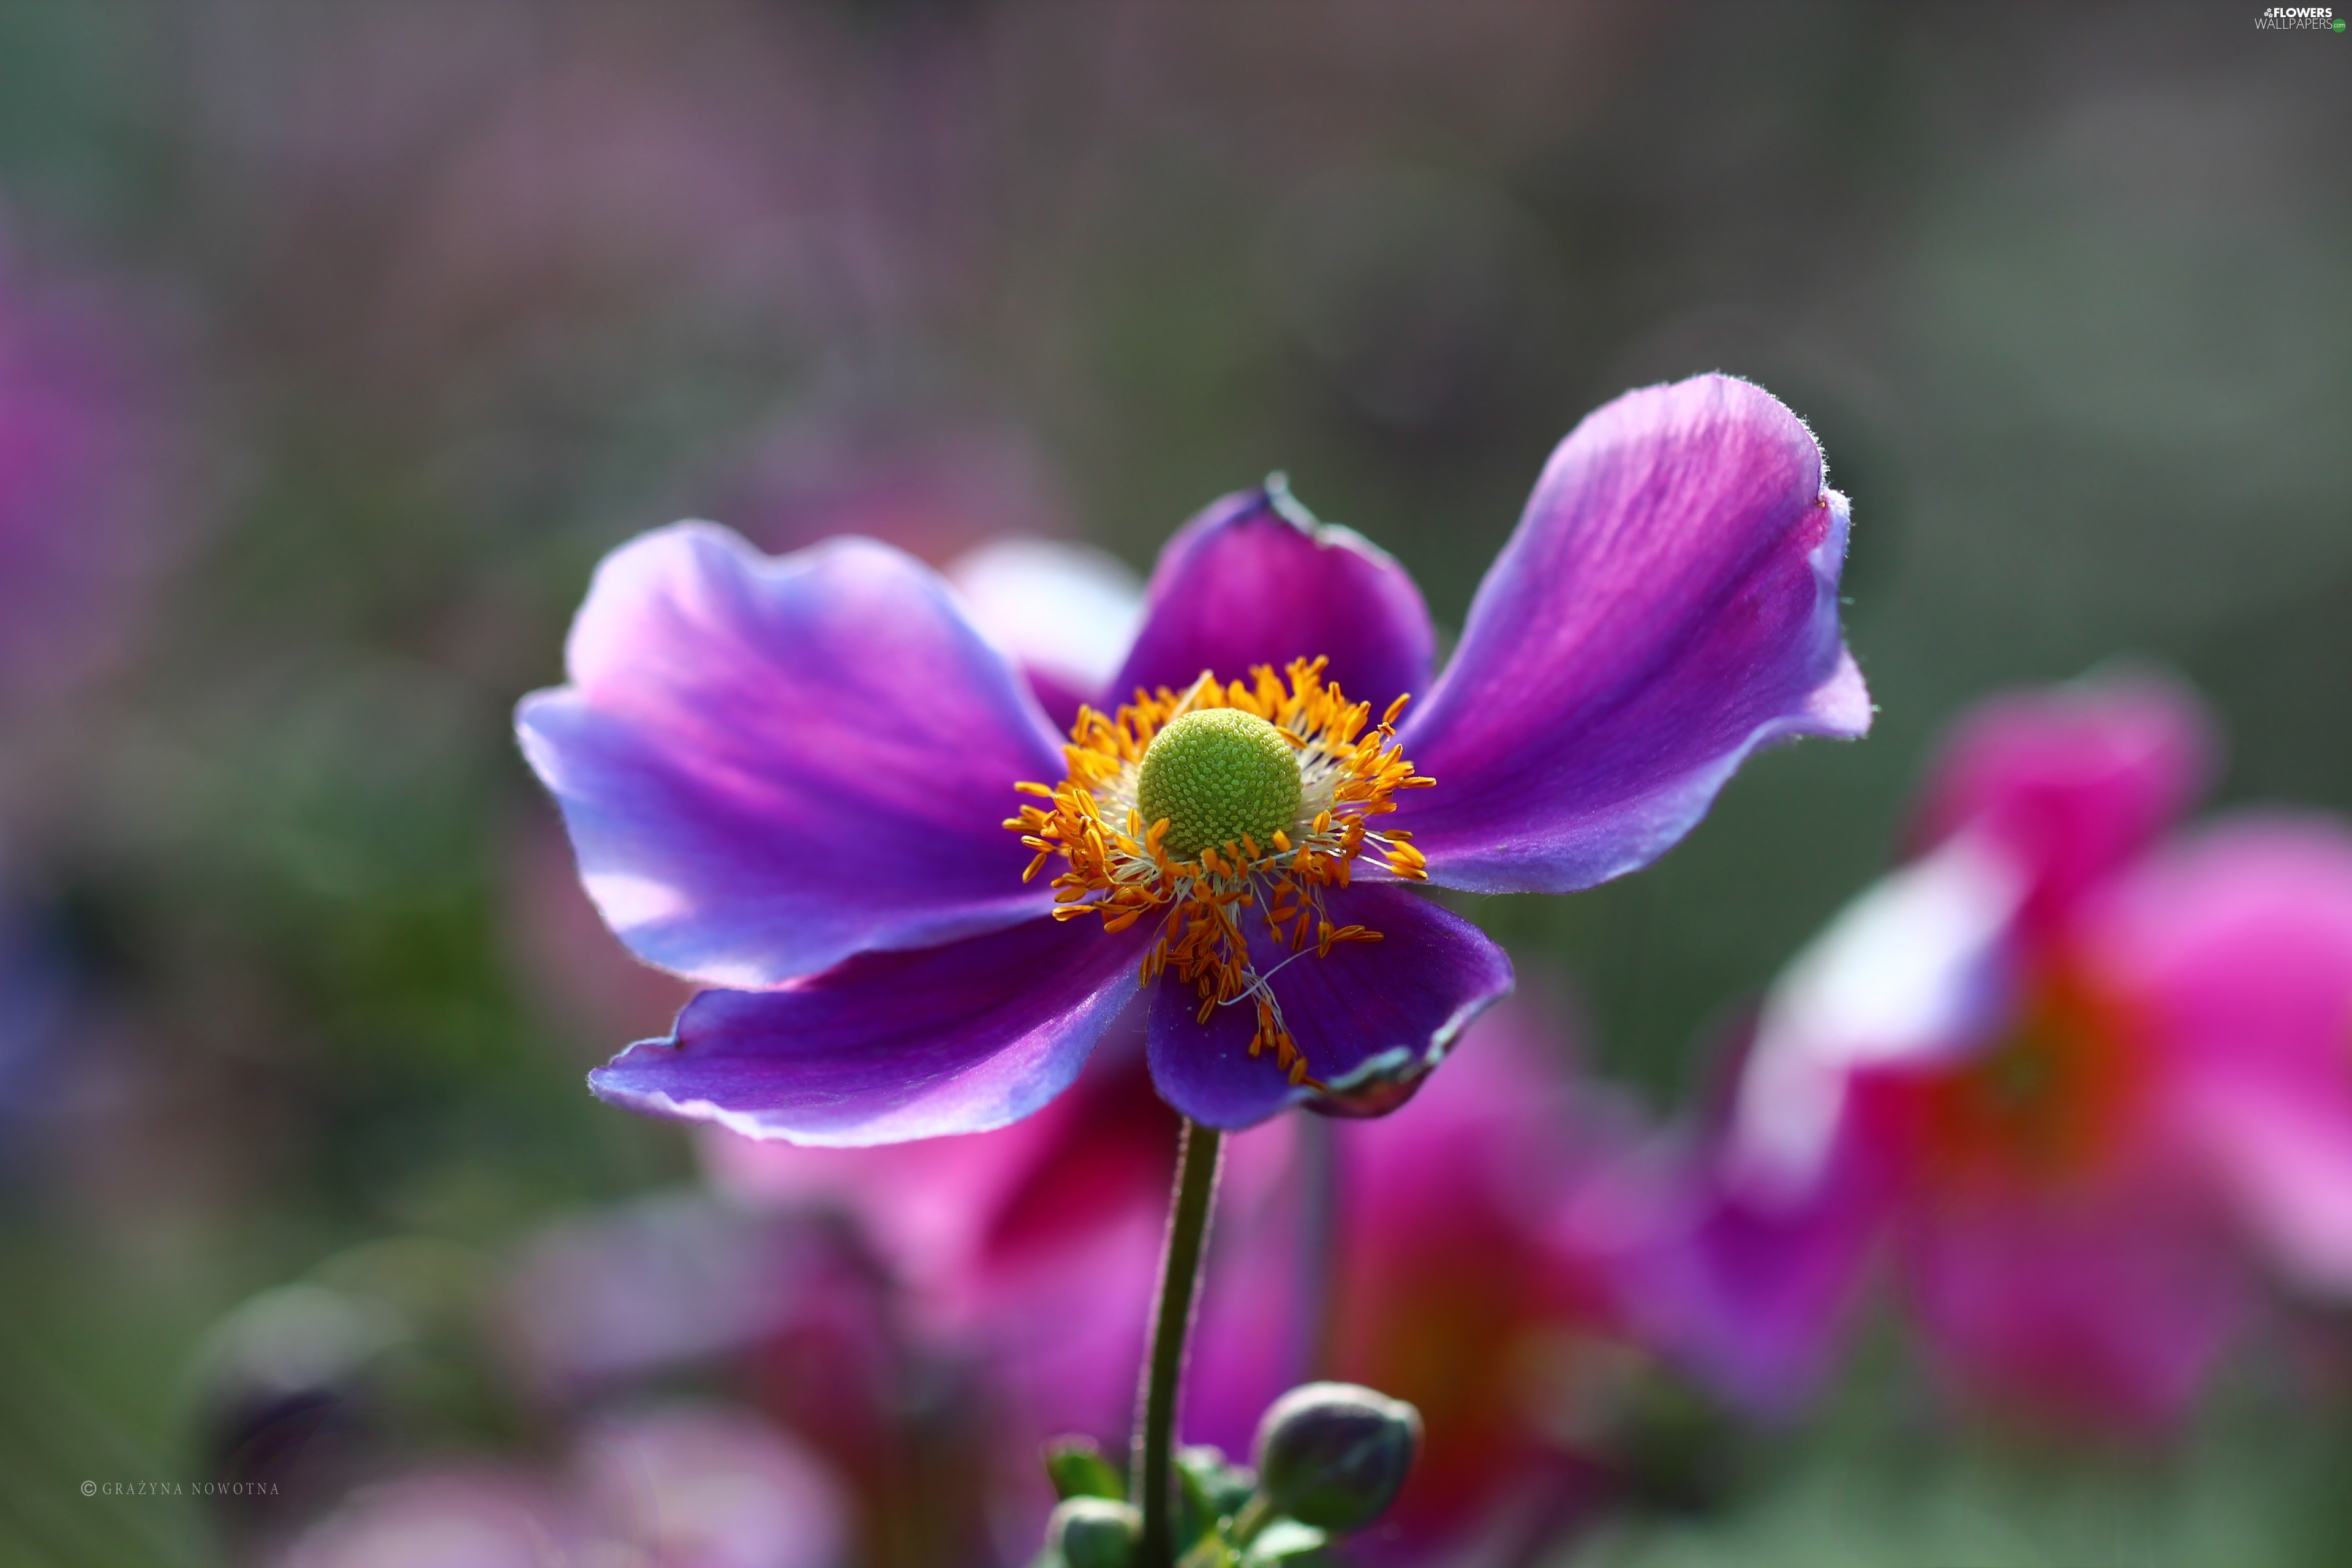 Violet Colourfull Flowers Japanese anemone Flowers wallpapers 3840x2560